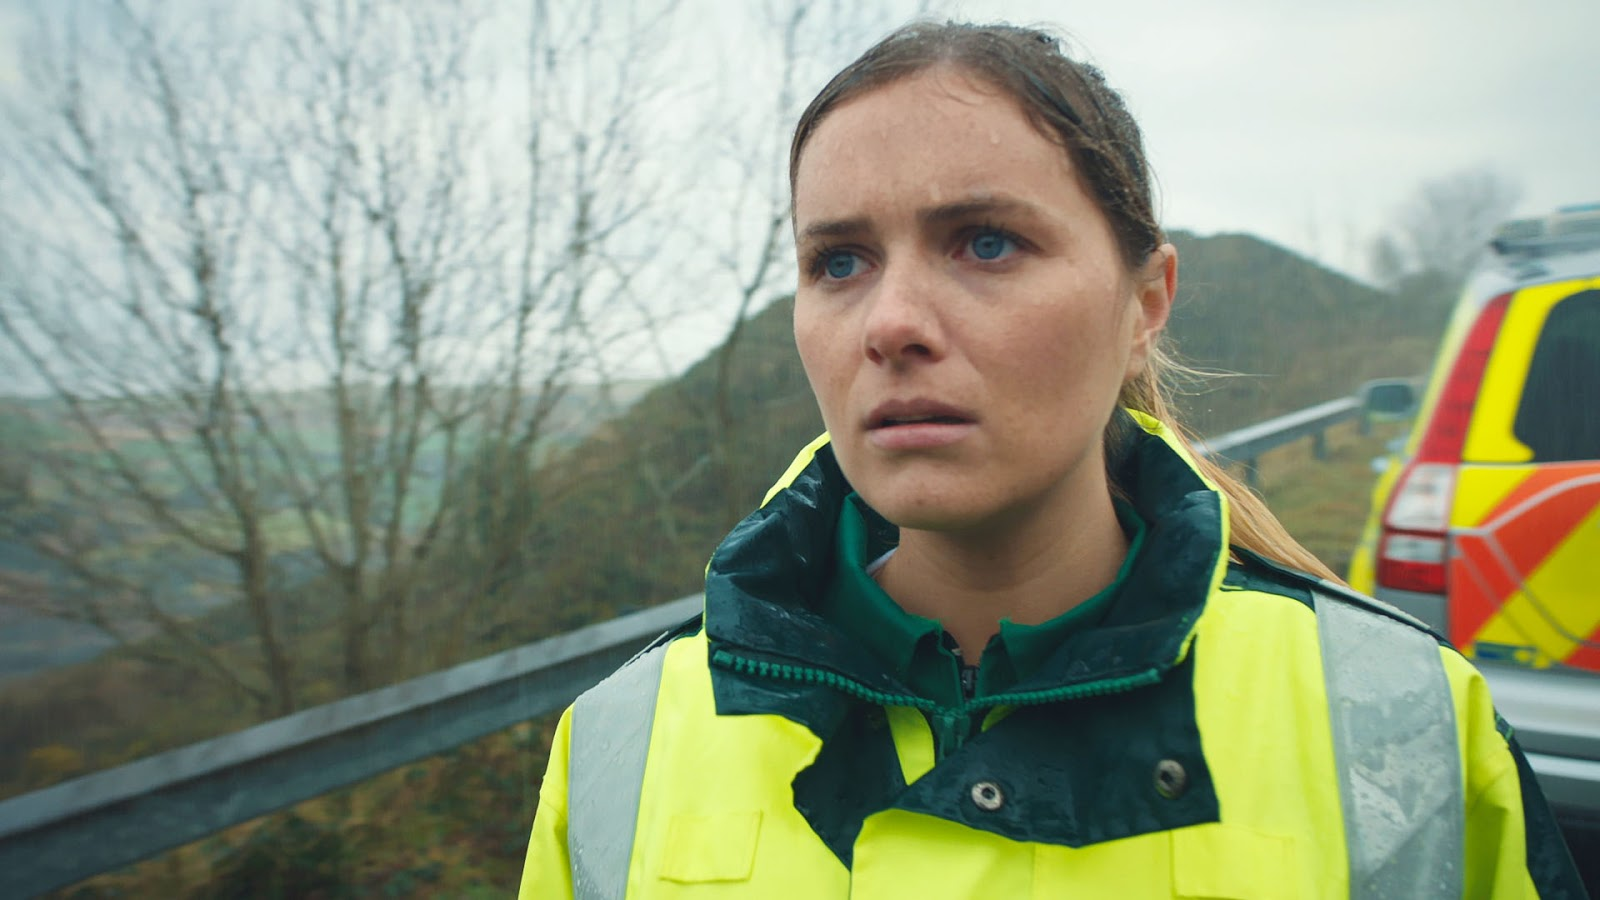 Casualty Alicia Munroe rape storyline